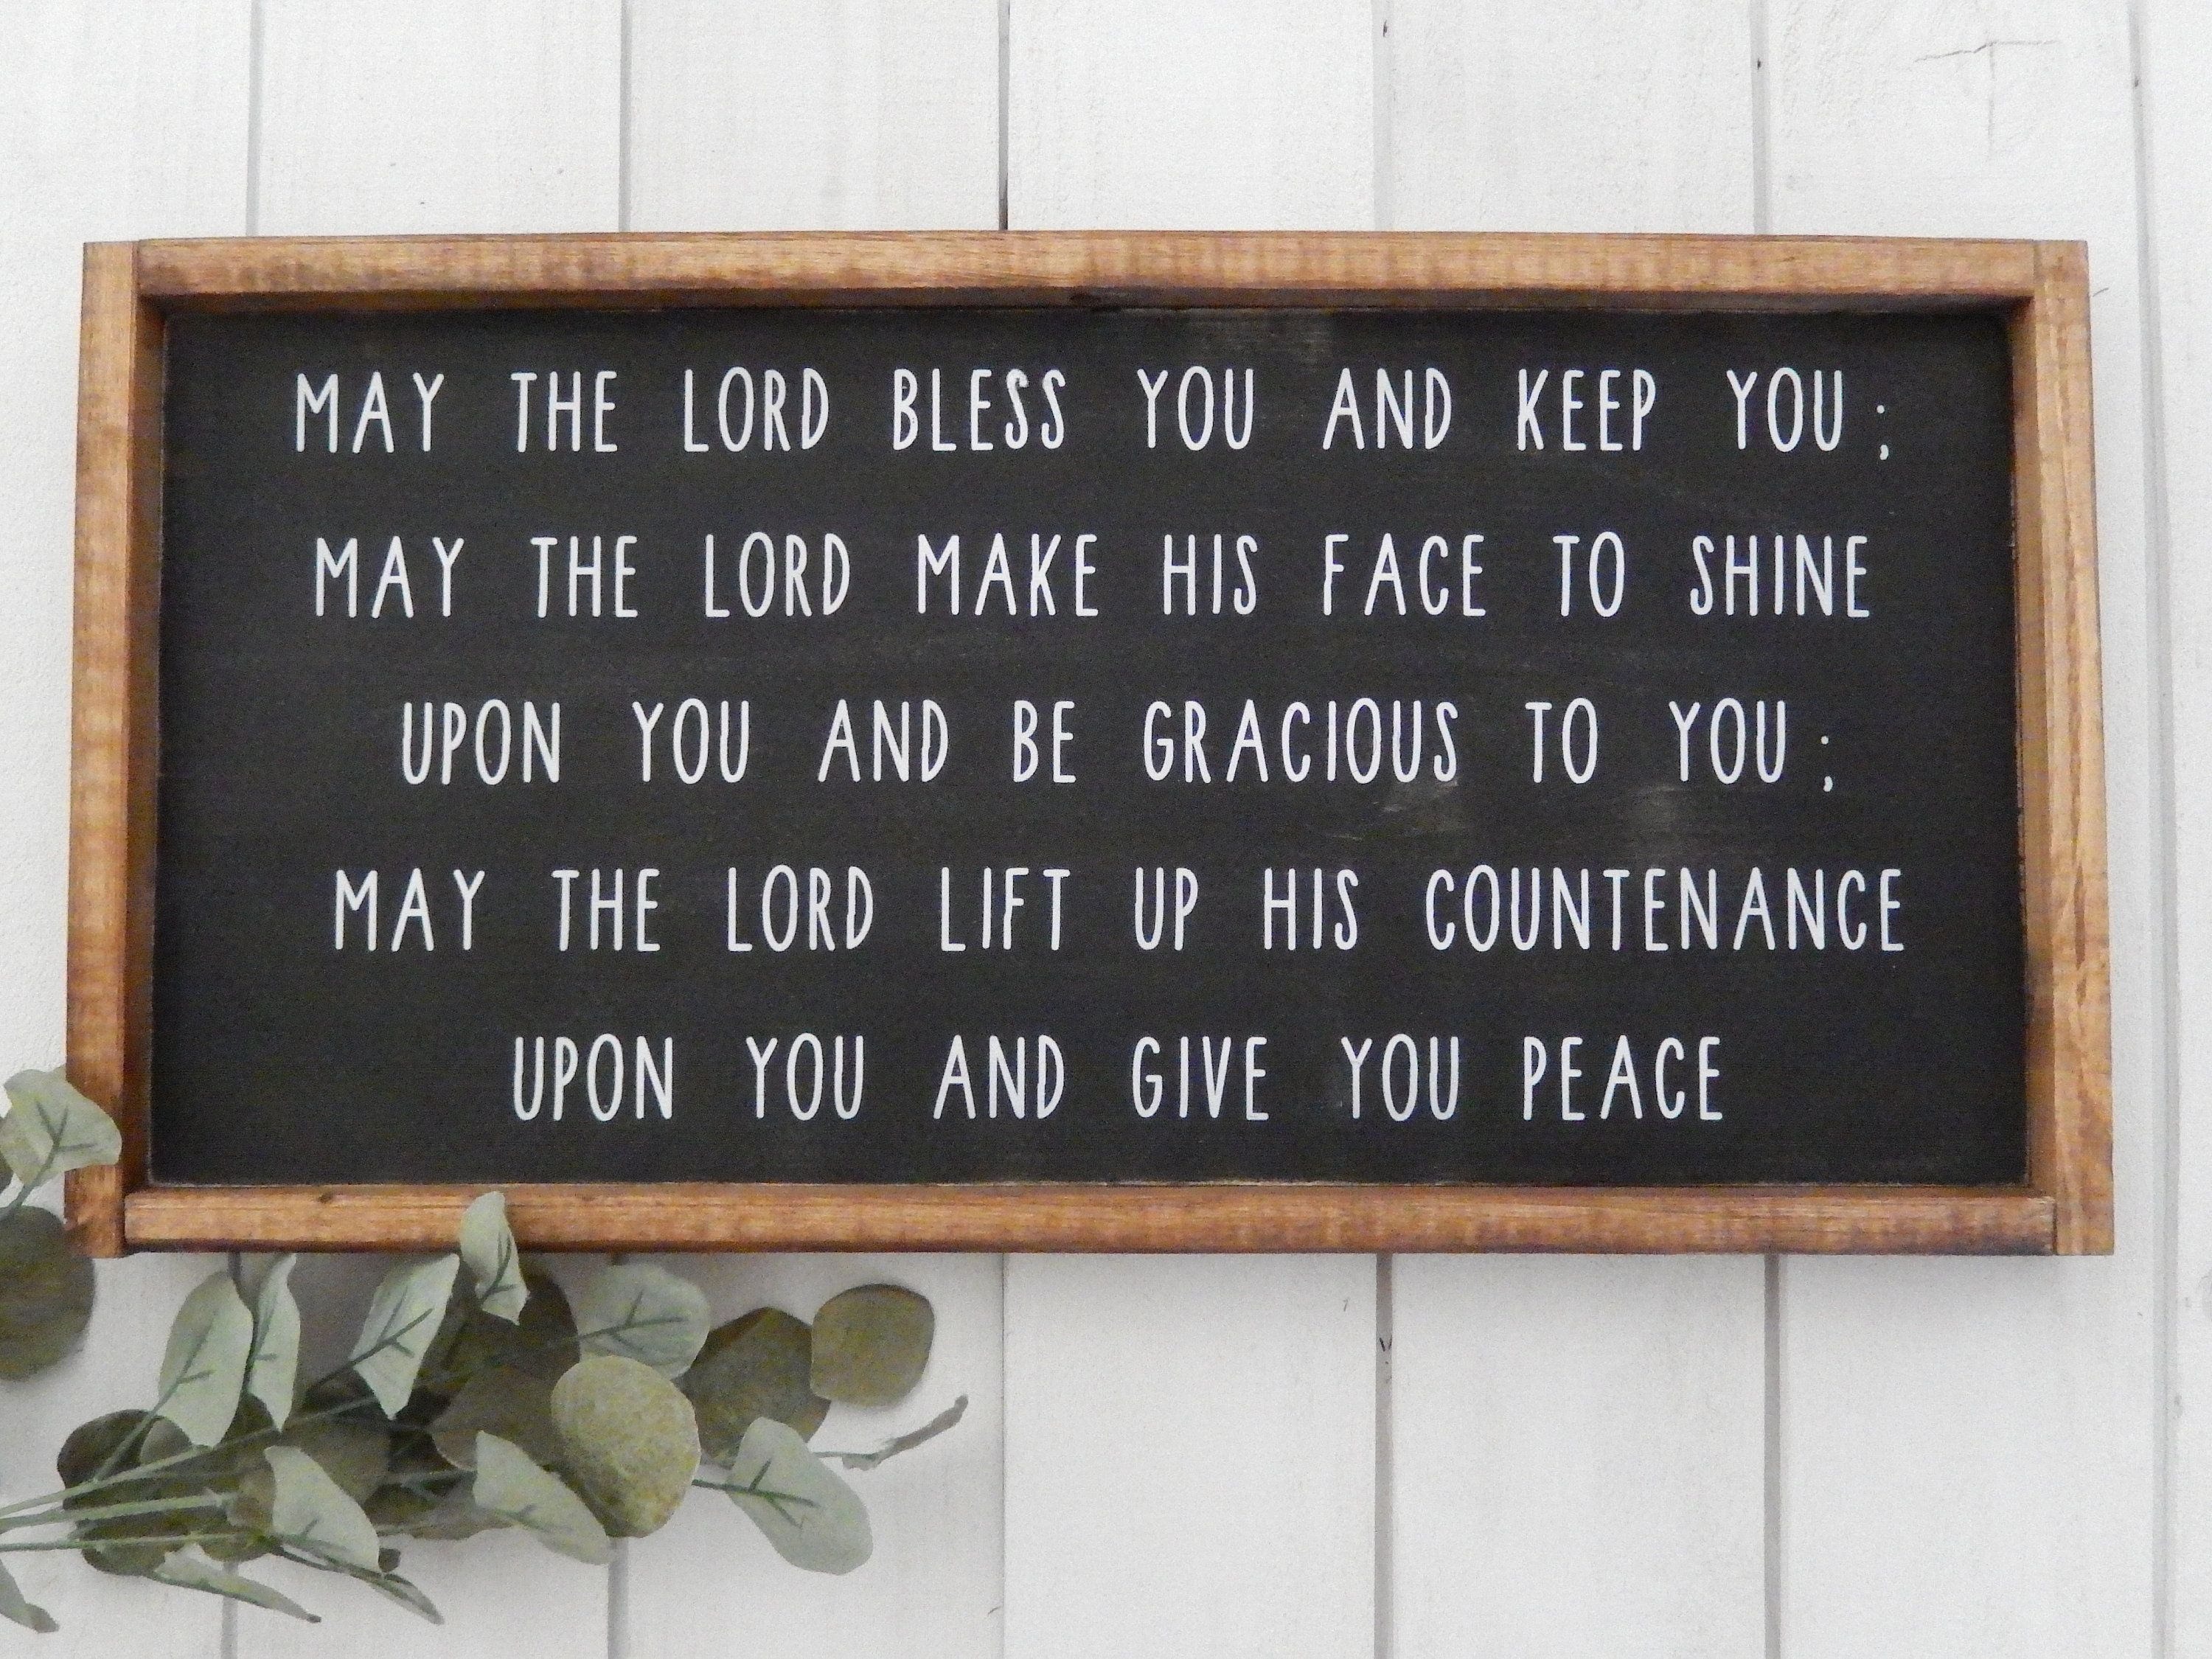 May The Lord Bless You And Keep You Sign Bible Verse Wood Etsy Wood Signs Bible Verse Wood Signs Wood Signs For Home